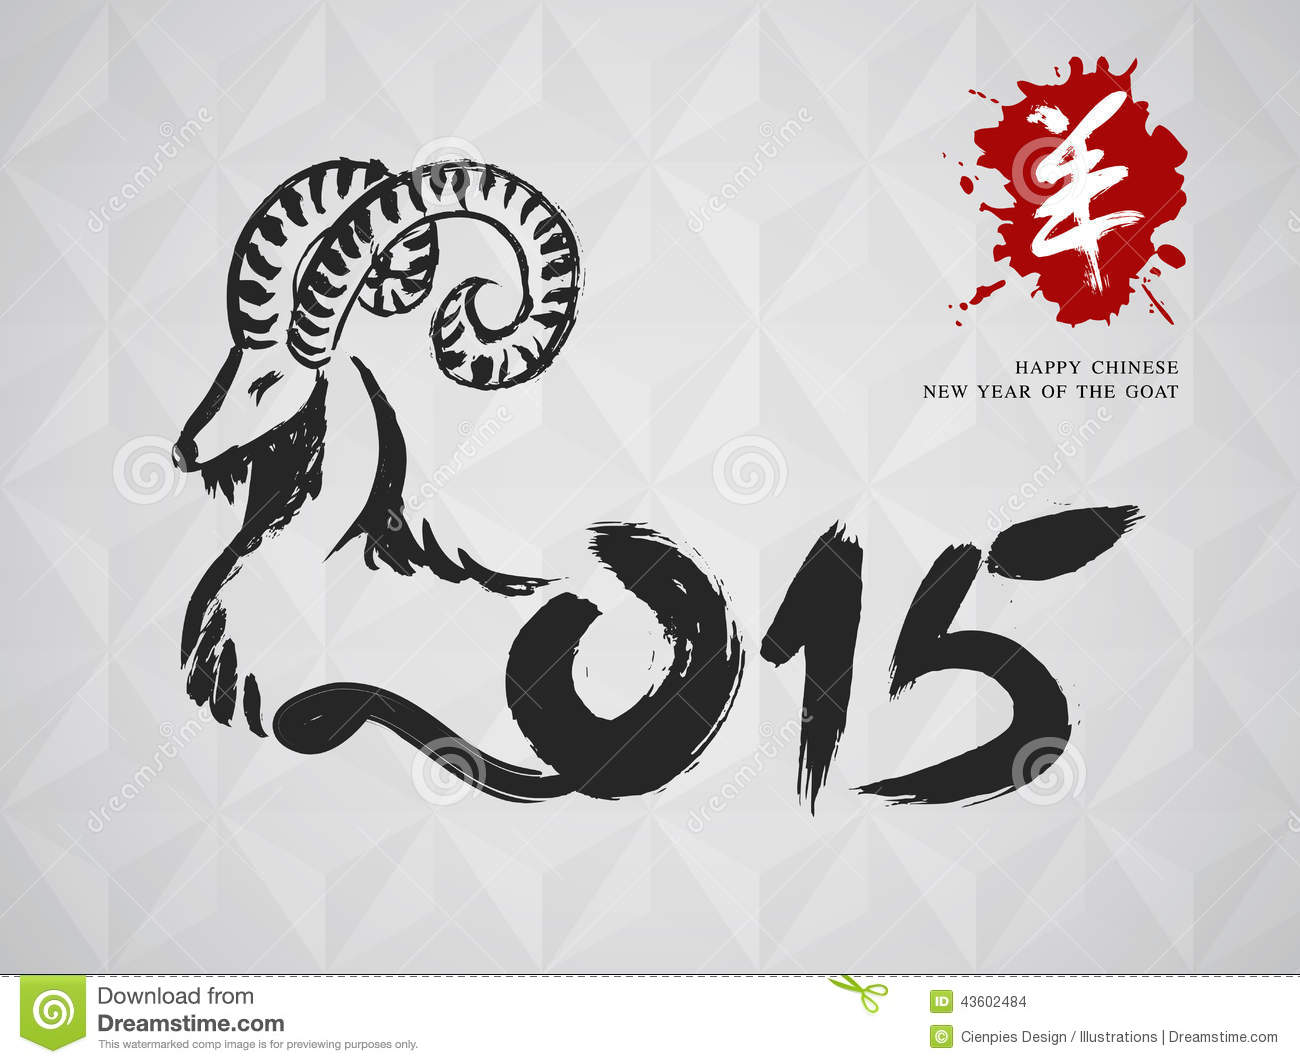 new year of the goat 2015 geometric background - Chinese New Year 2015 Animal